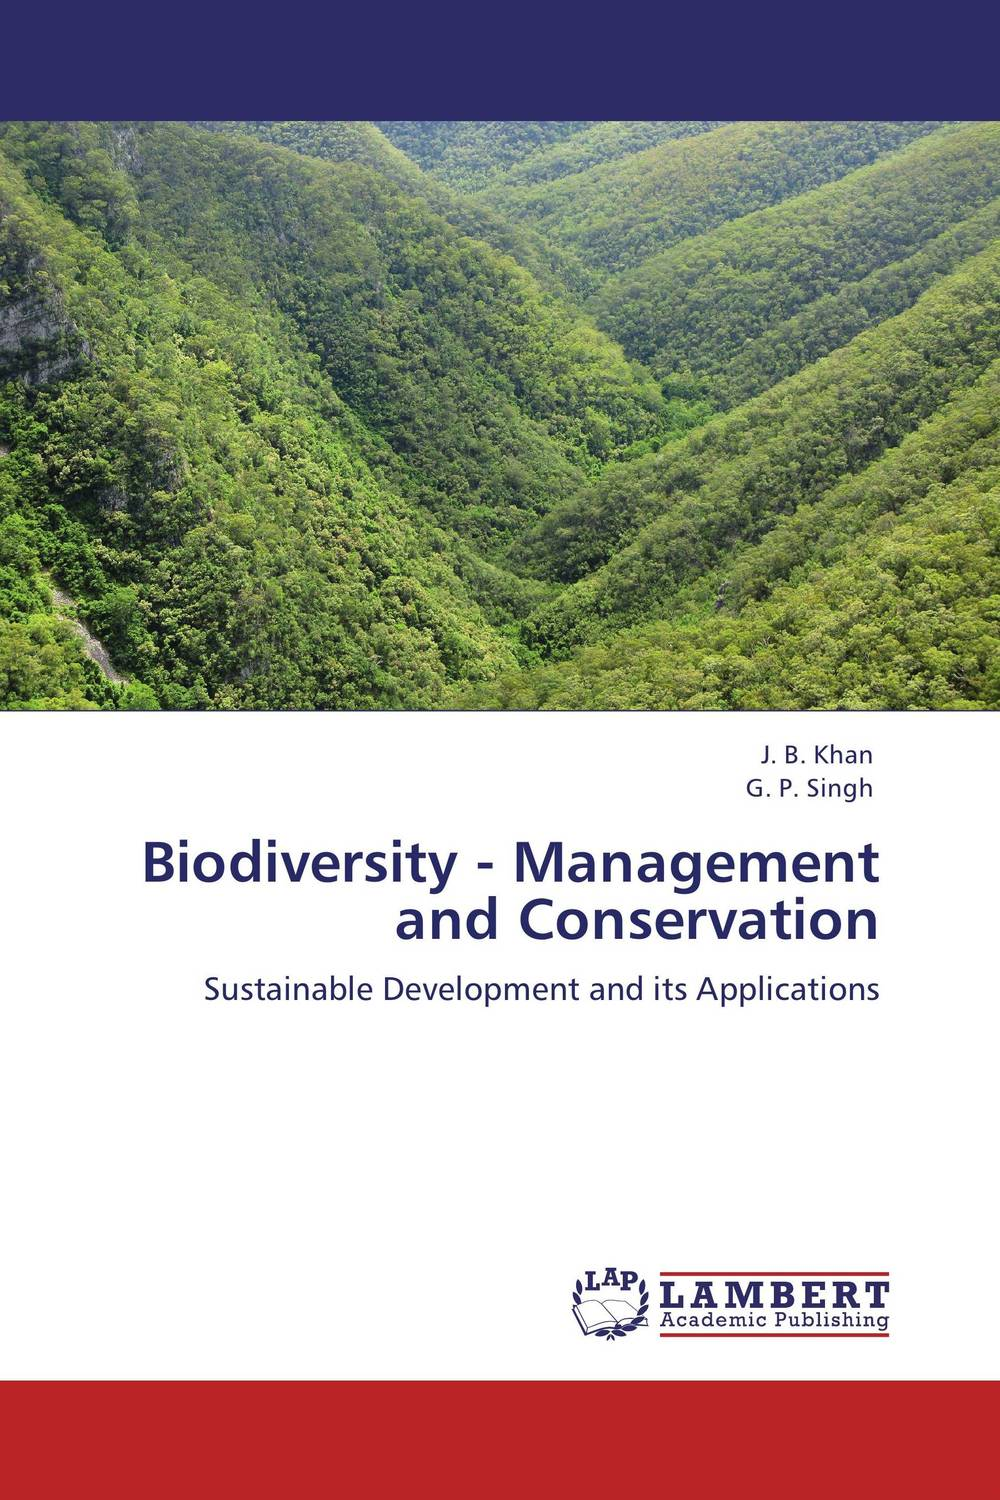 Biodiversity - Management and Conservation